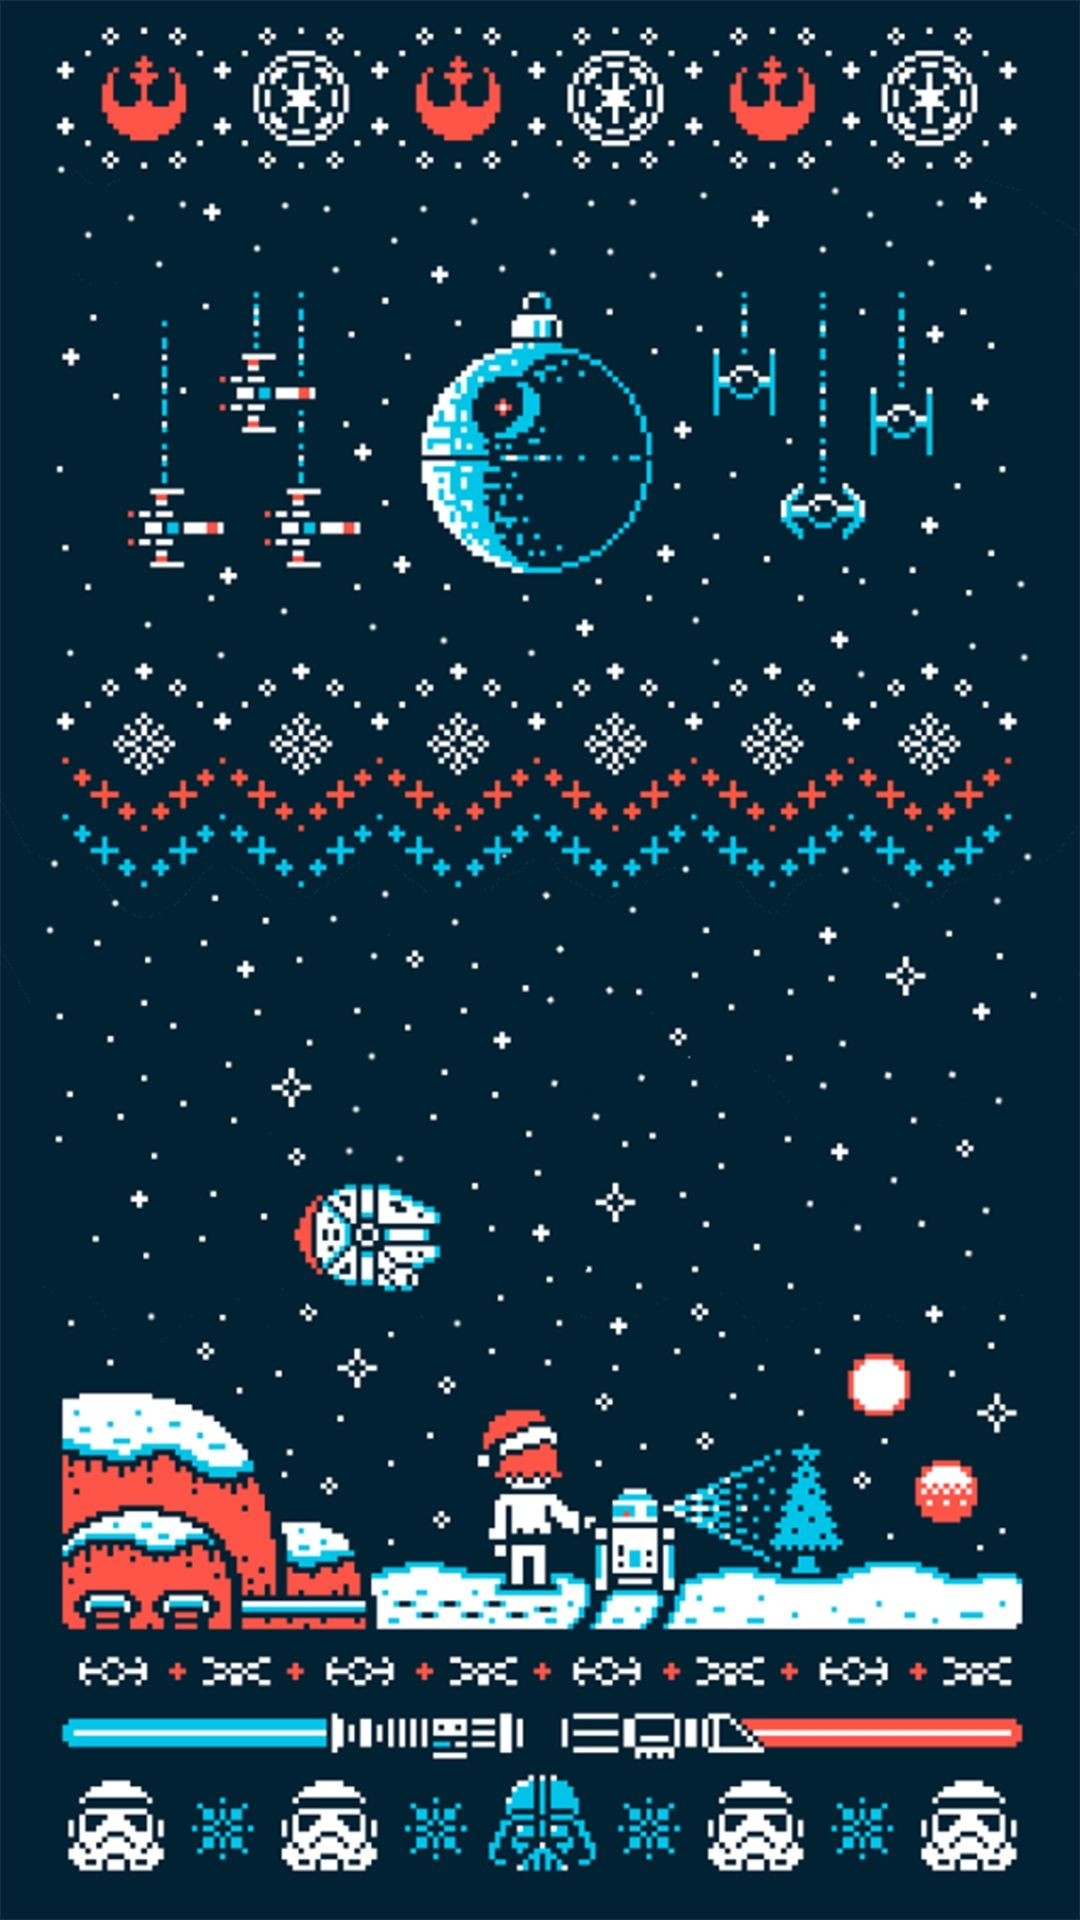 25 Free Christmas Wallpapers For Iphone Cute And Vintage Backgrounds Star Wars Wallpaper Iphone Star Wars Christmas Sweater Star Wars Wallpaper